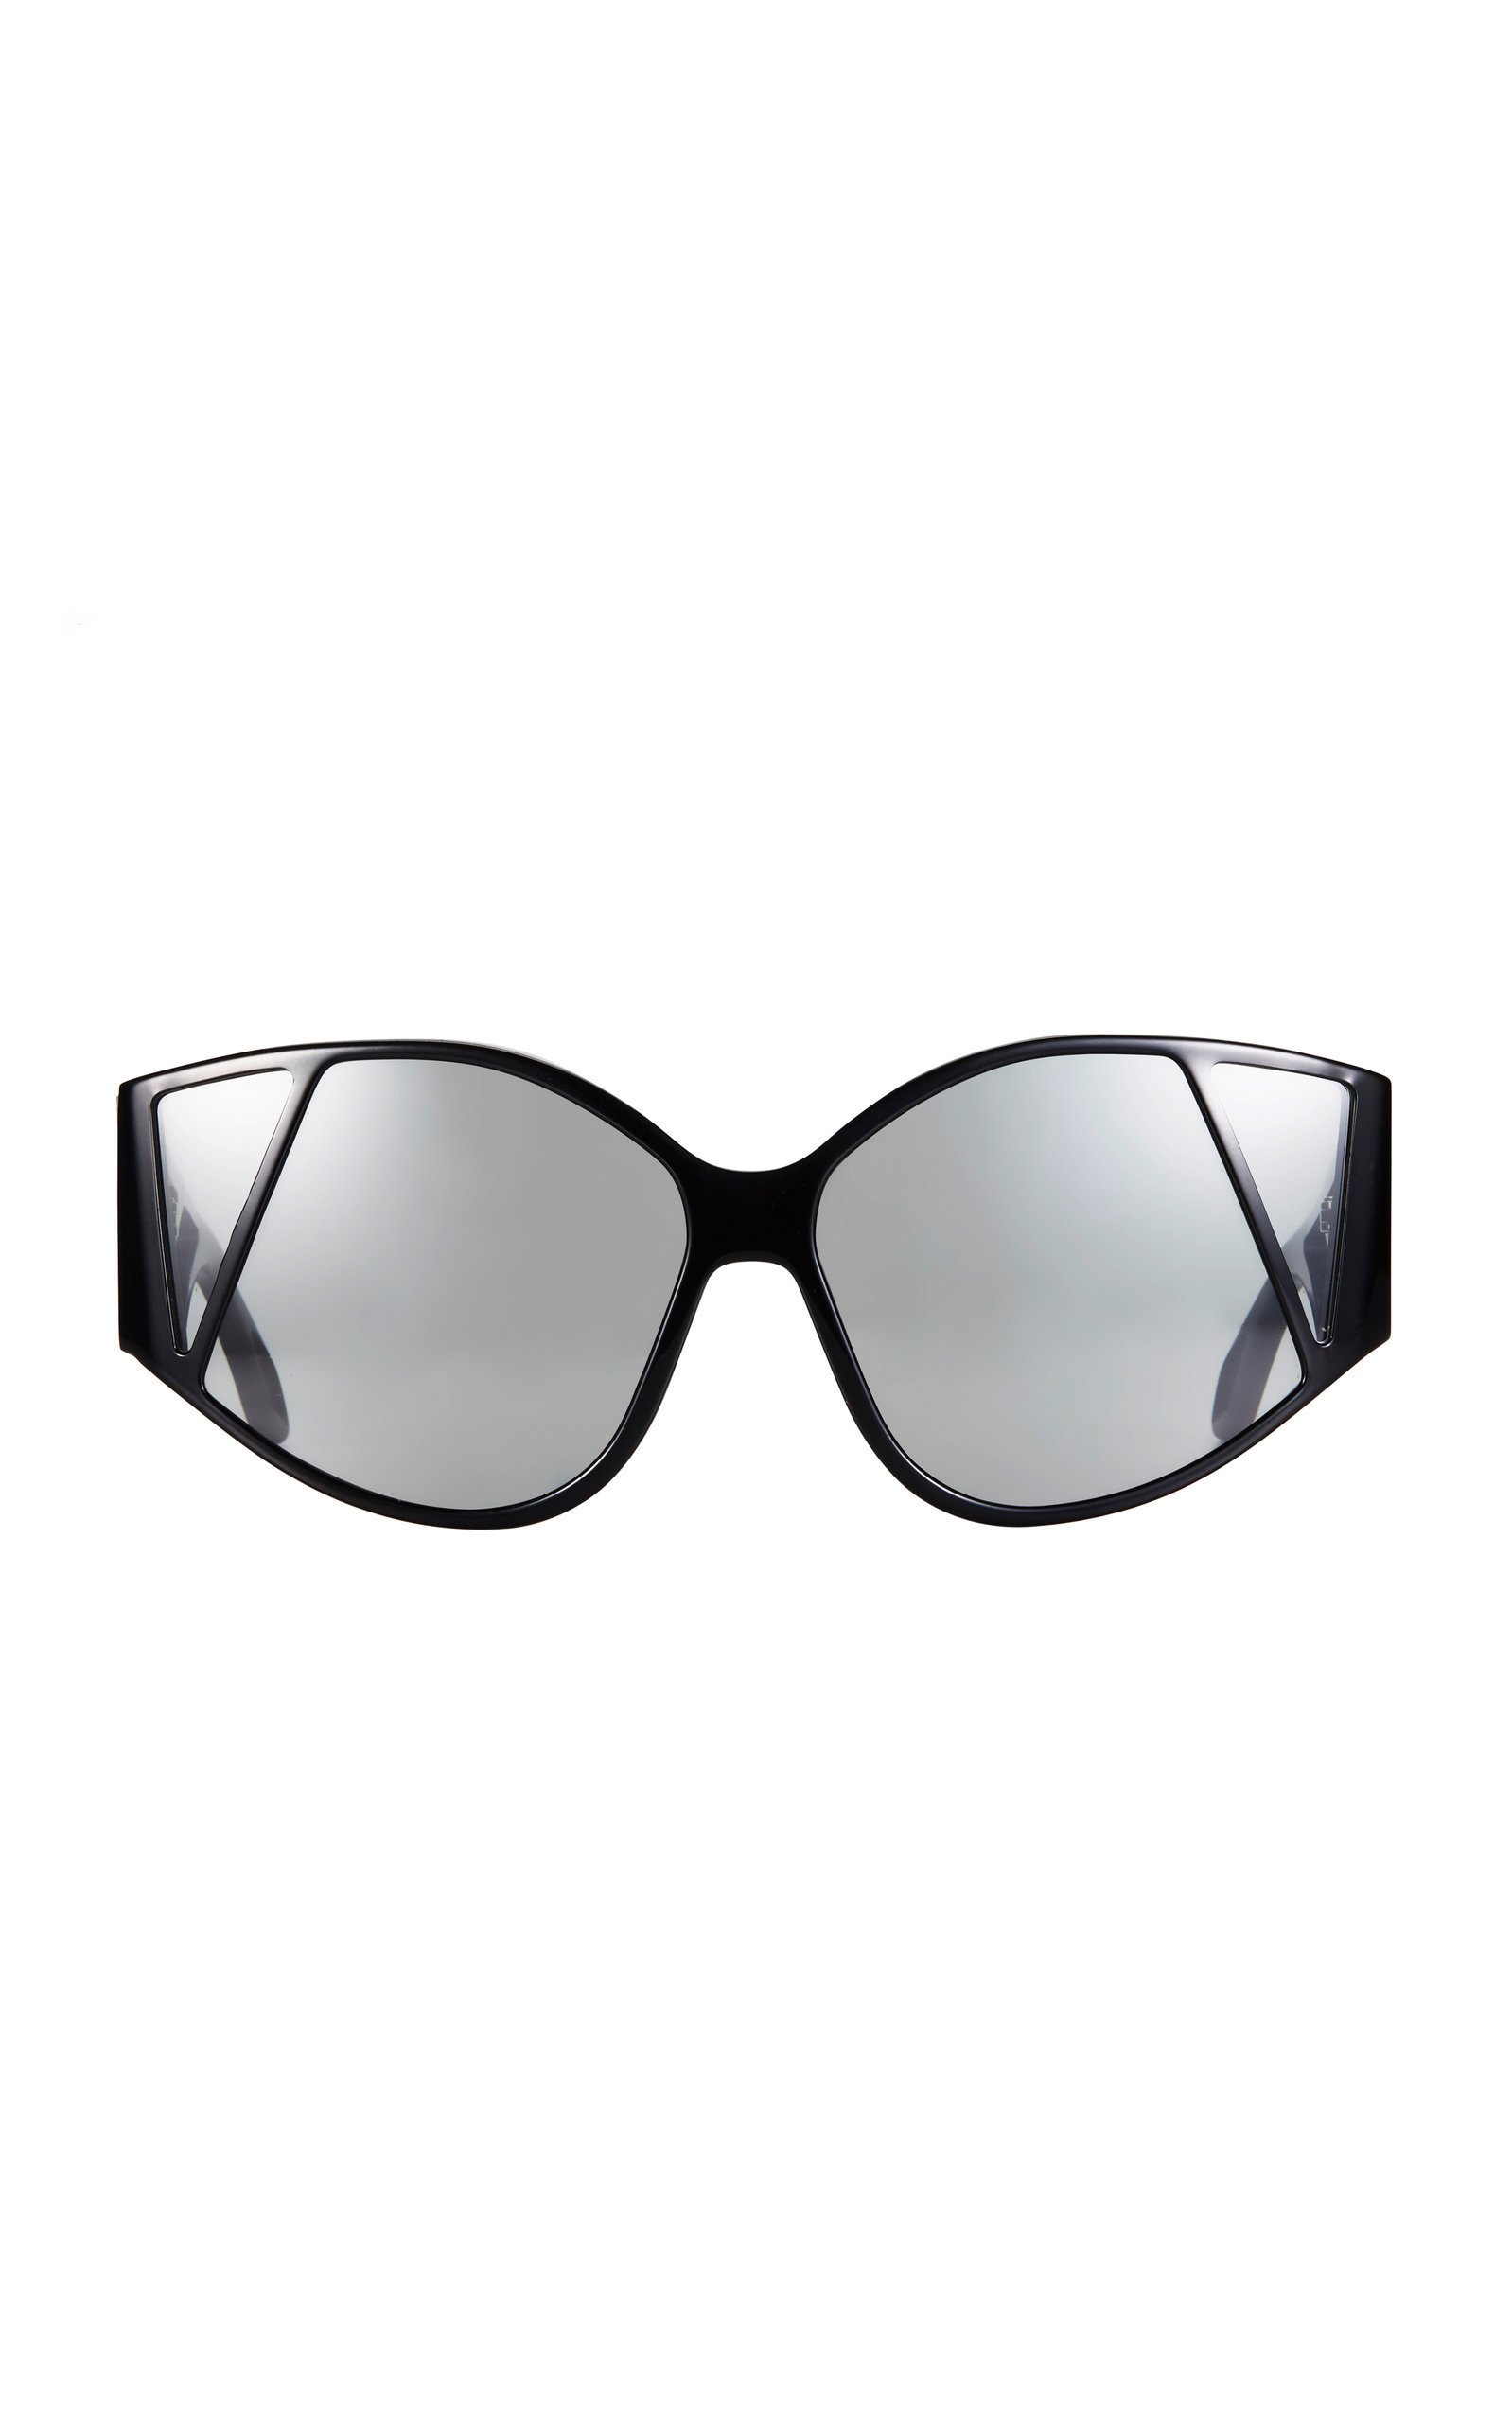 Poppy Lissiman Hyacinth Cat-Eye Sunglasses